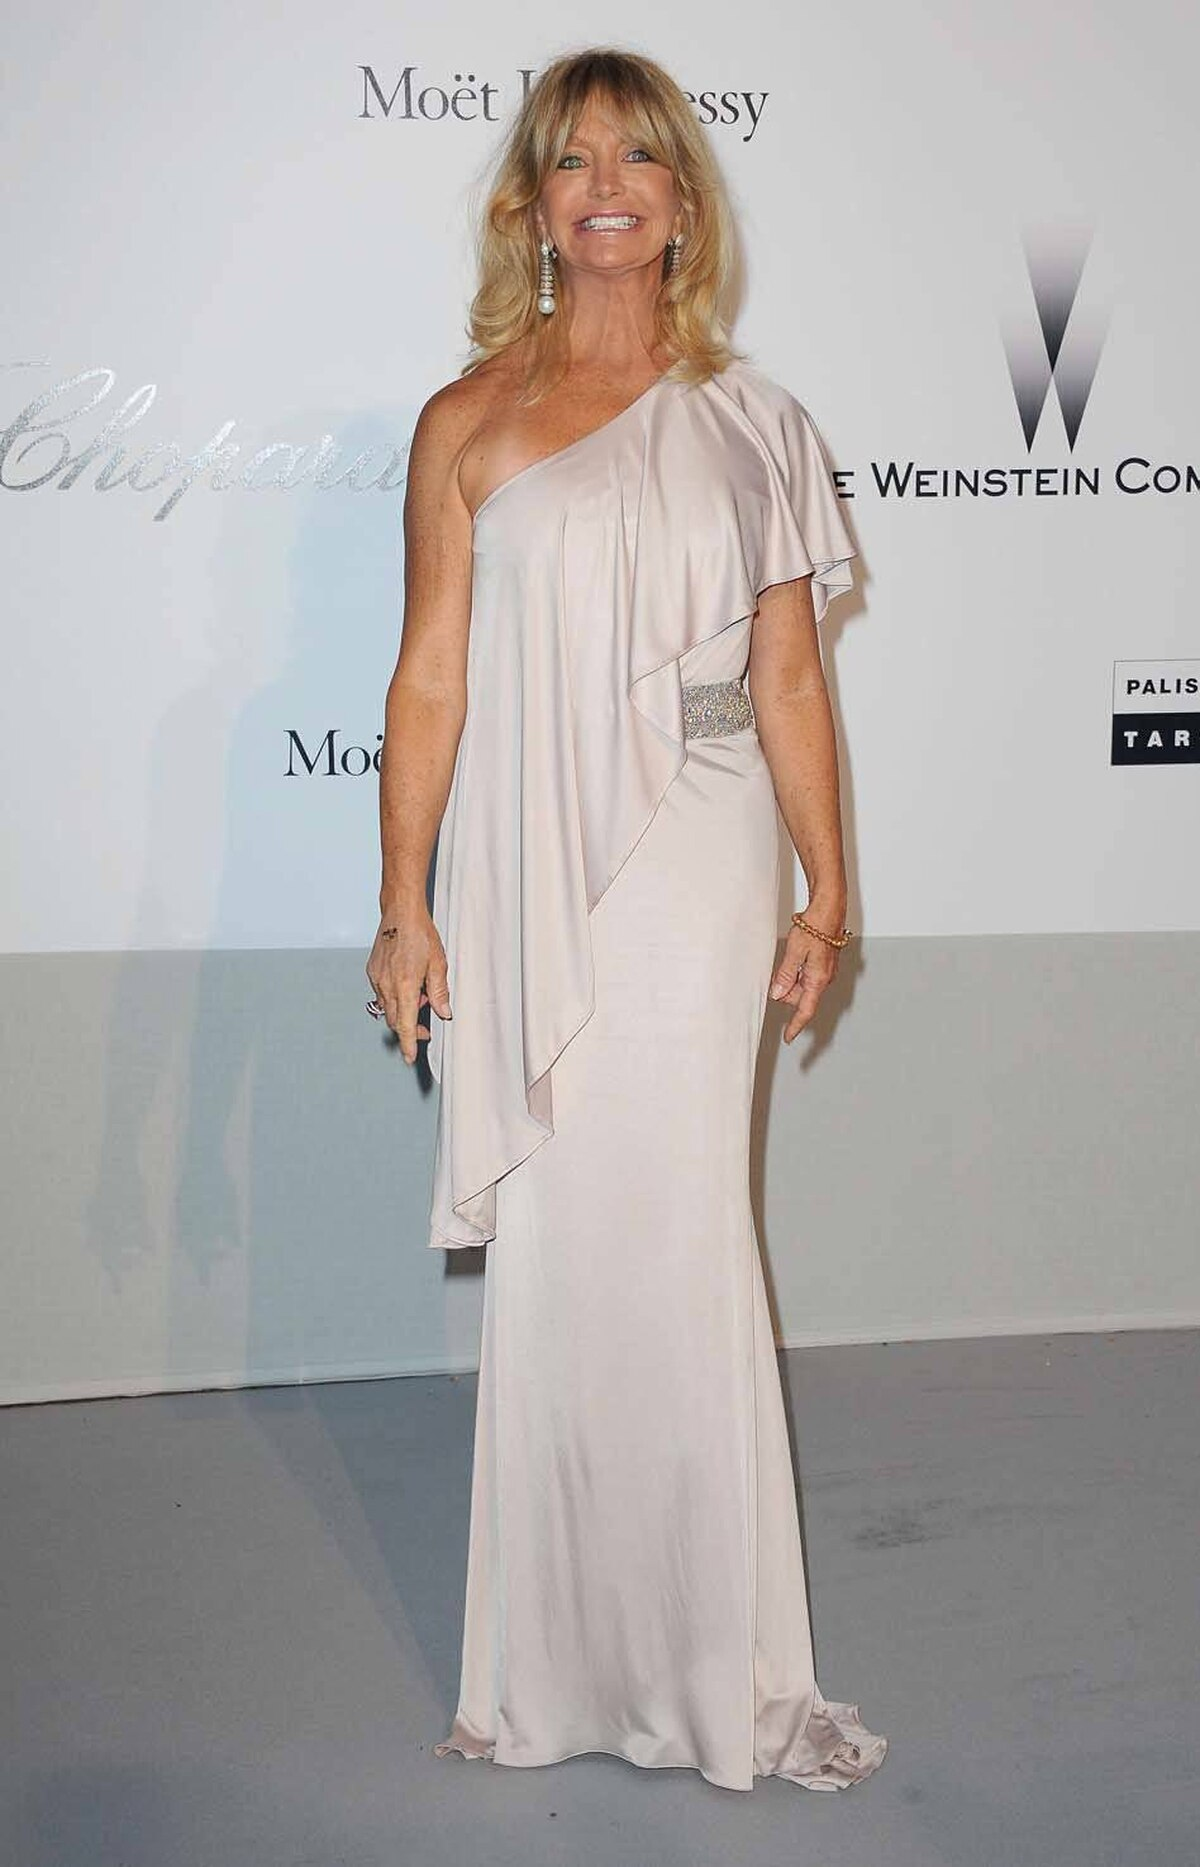 Goldie Hawn attends amfAR's Cinema Against AIDS Gala at the Cannes Film Festival on Thursday.